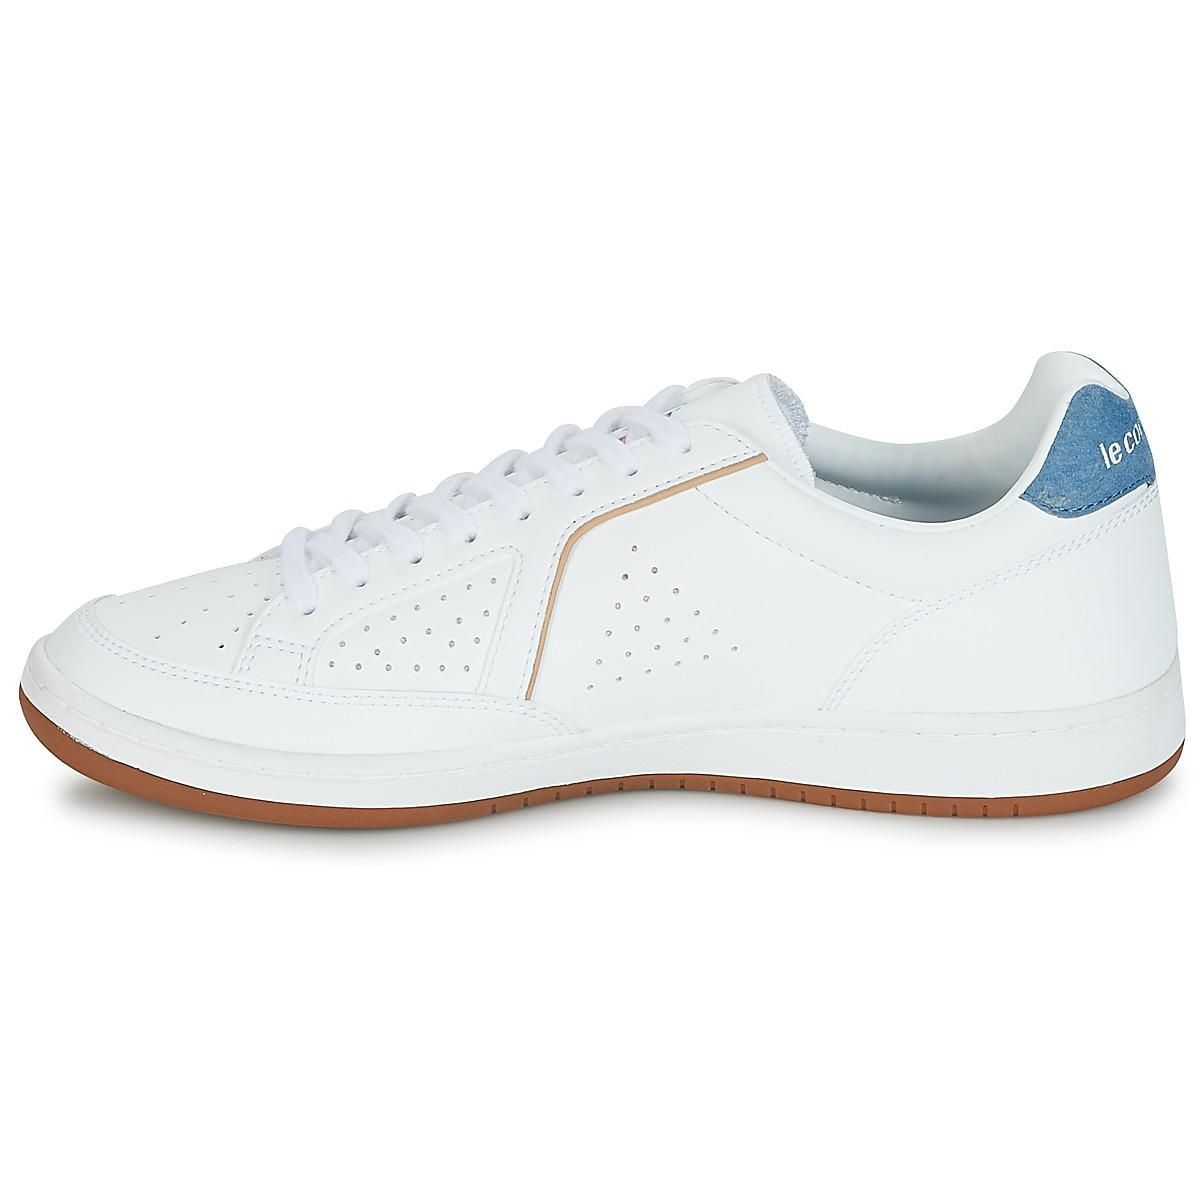 a9e5dd5a47b Le Coq Sportif Icons Sport Men's Shoes (trainers) In White in White for Men  - Lyst